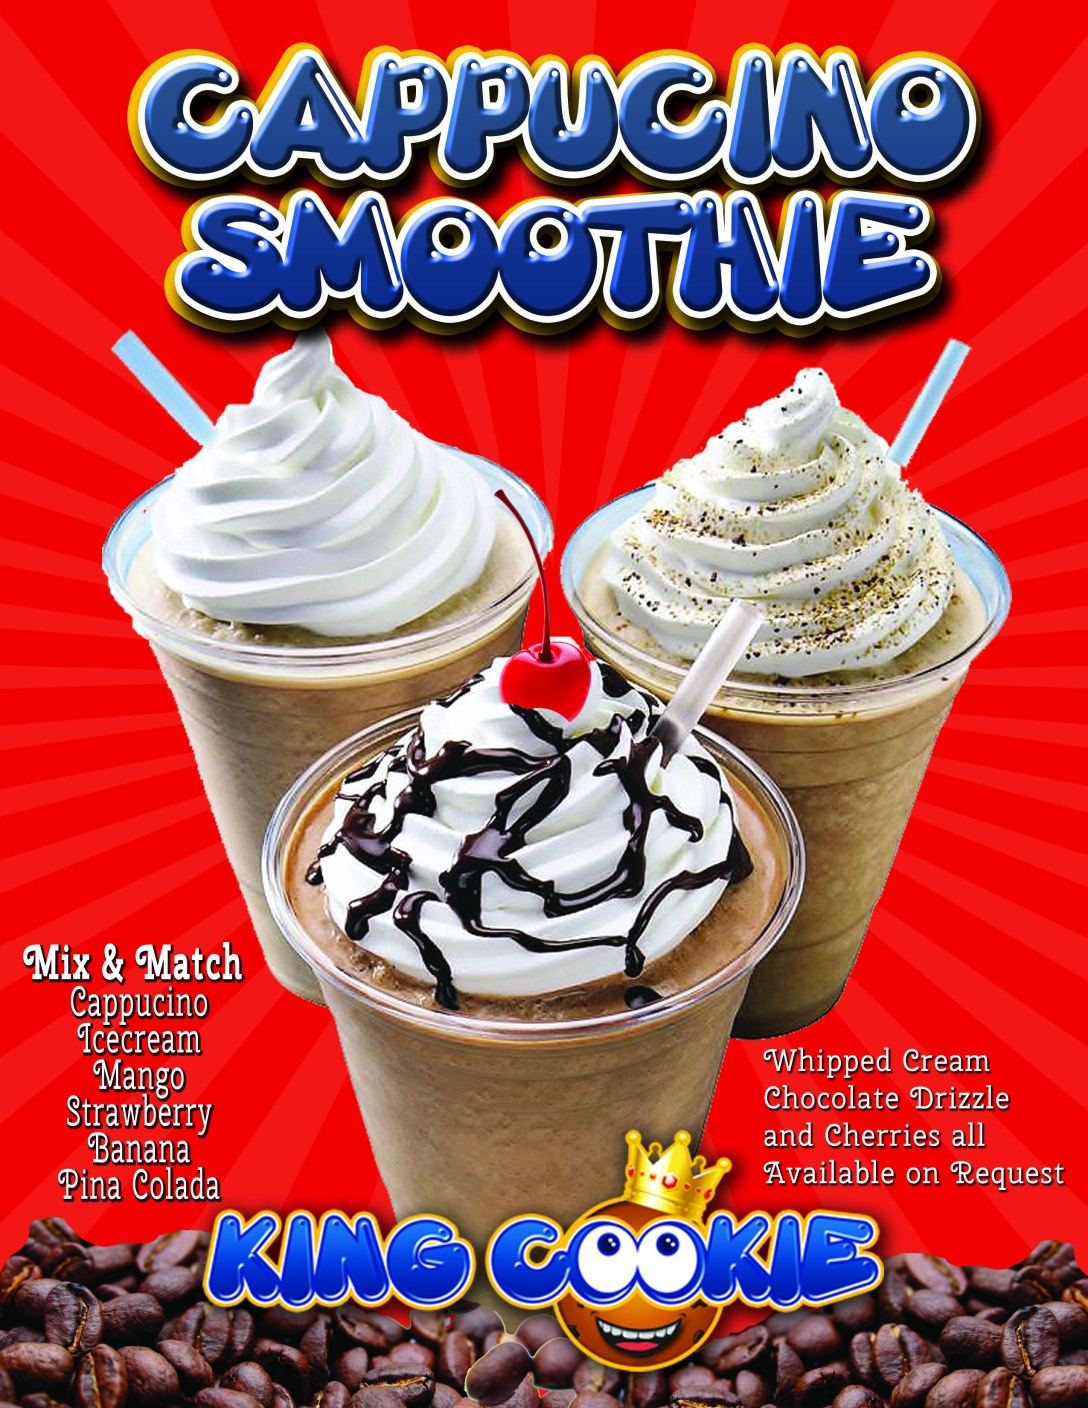 King Cookie specializes in cookies, custom cookie cakes, frozen drinks, and smoothies!